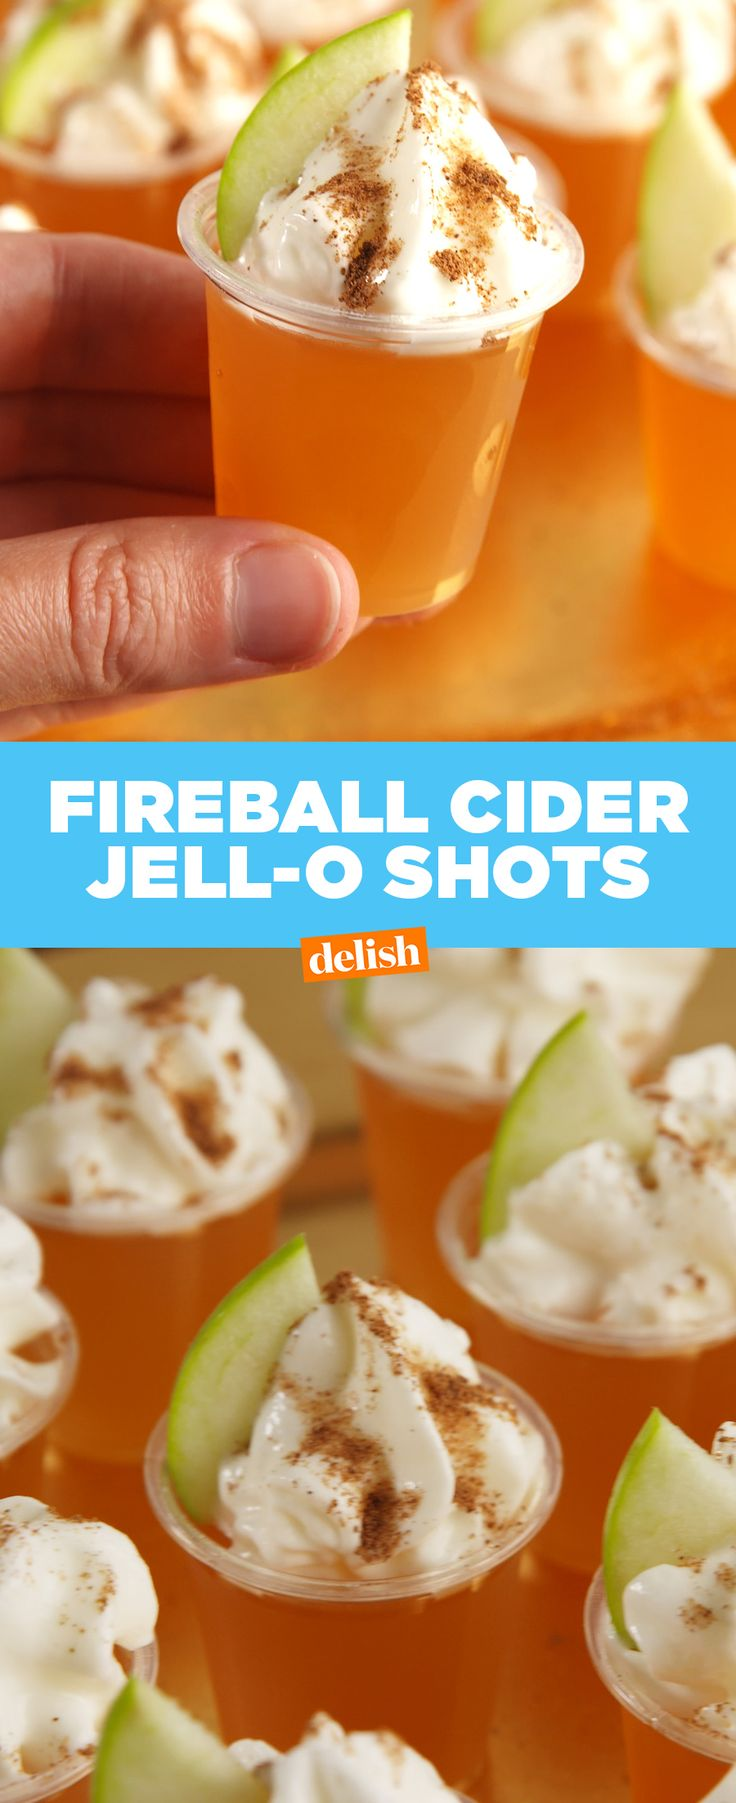 Fireball Cider Jell-O Shots are going to be your favorite way to booze up this fall. Get the recipe at Delish.com.